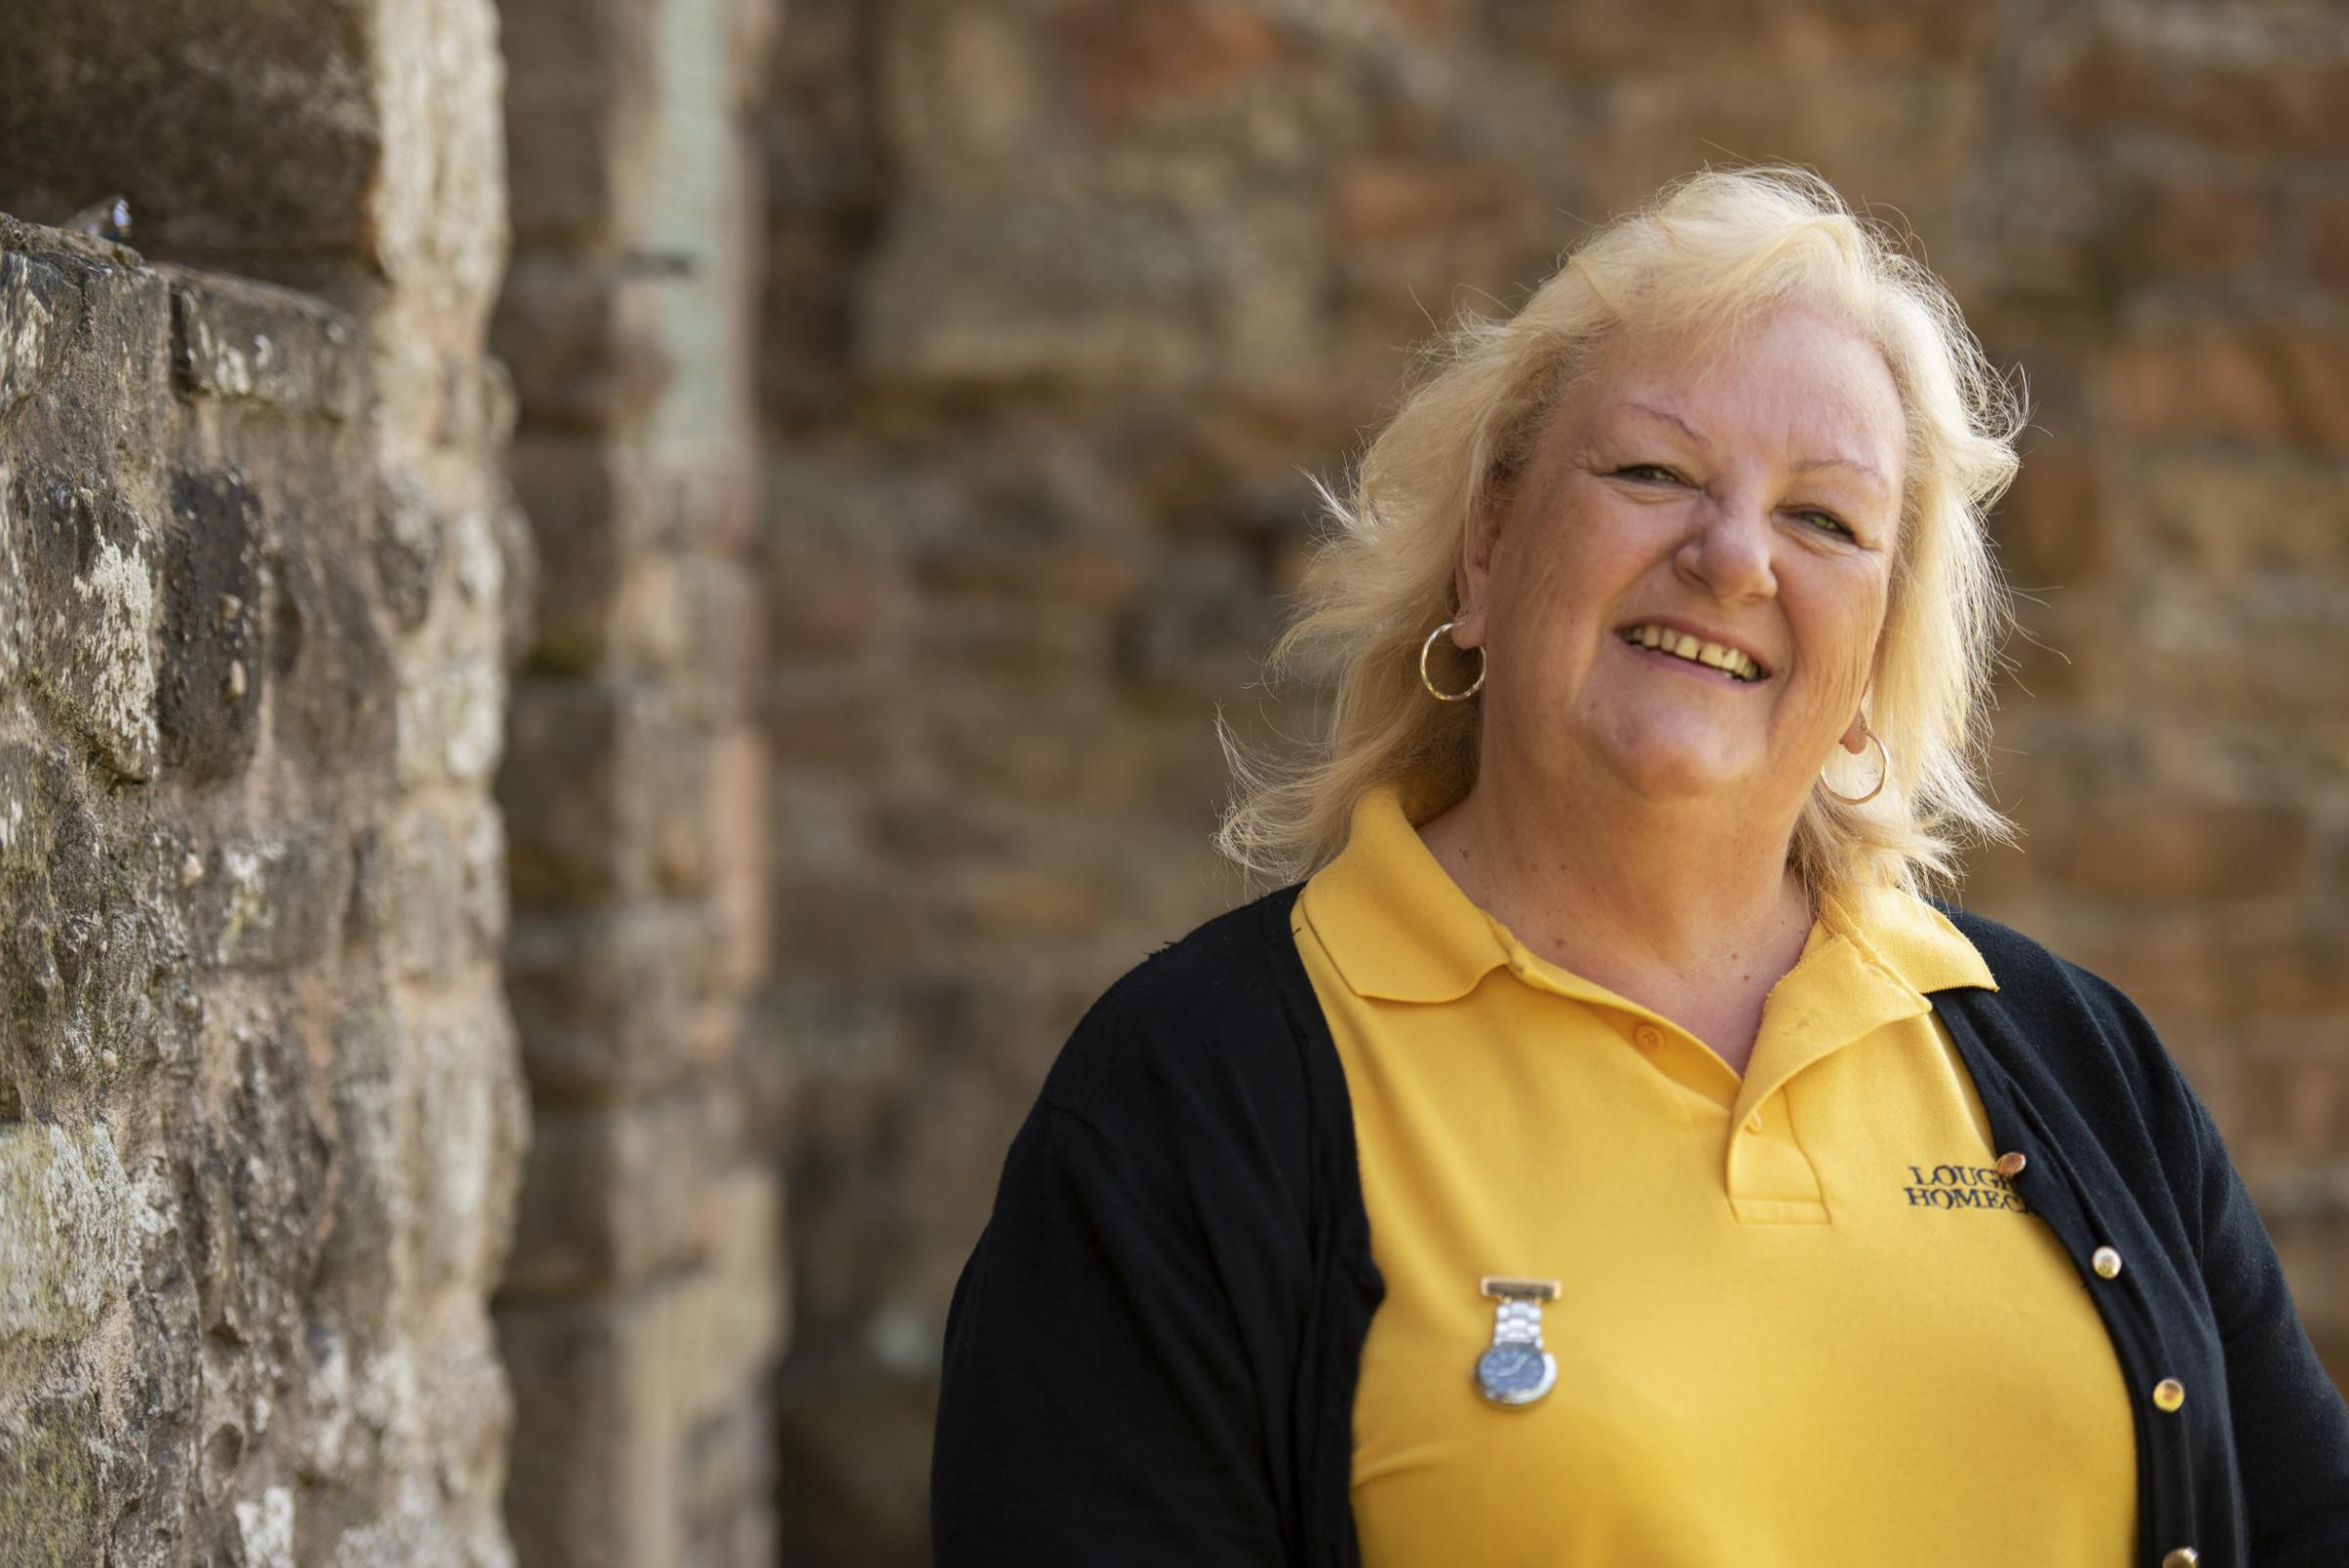 Community care worker in the running for a social care Oscar